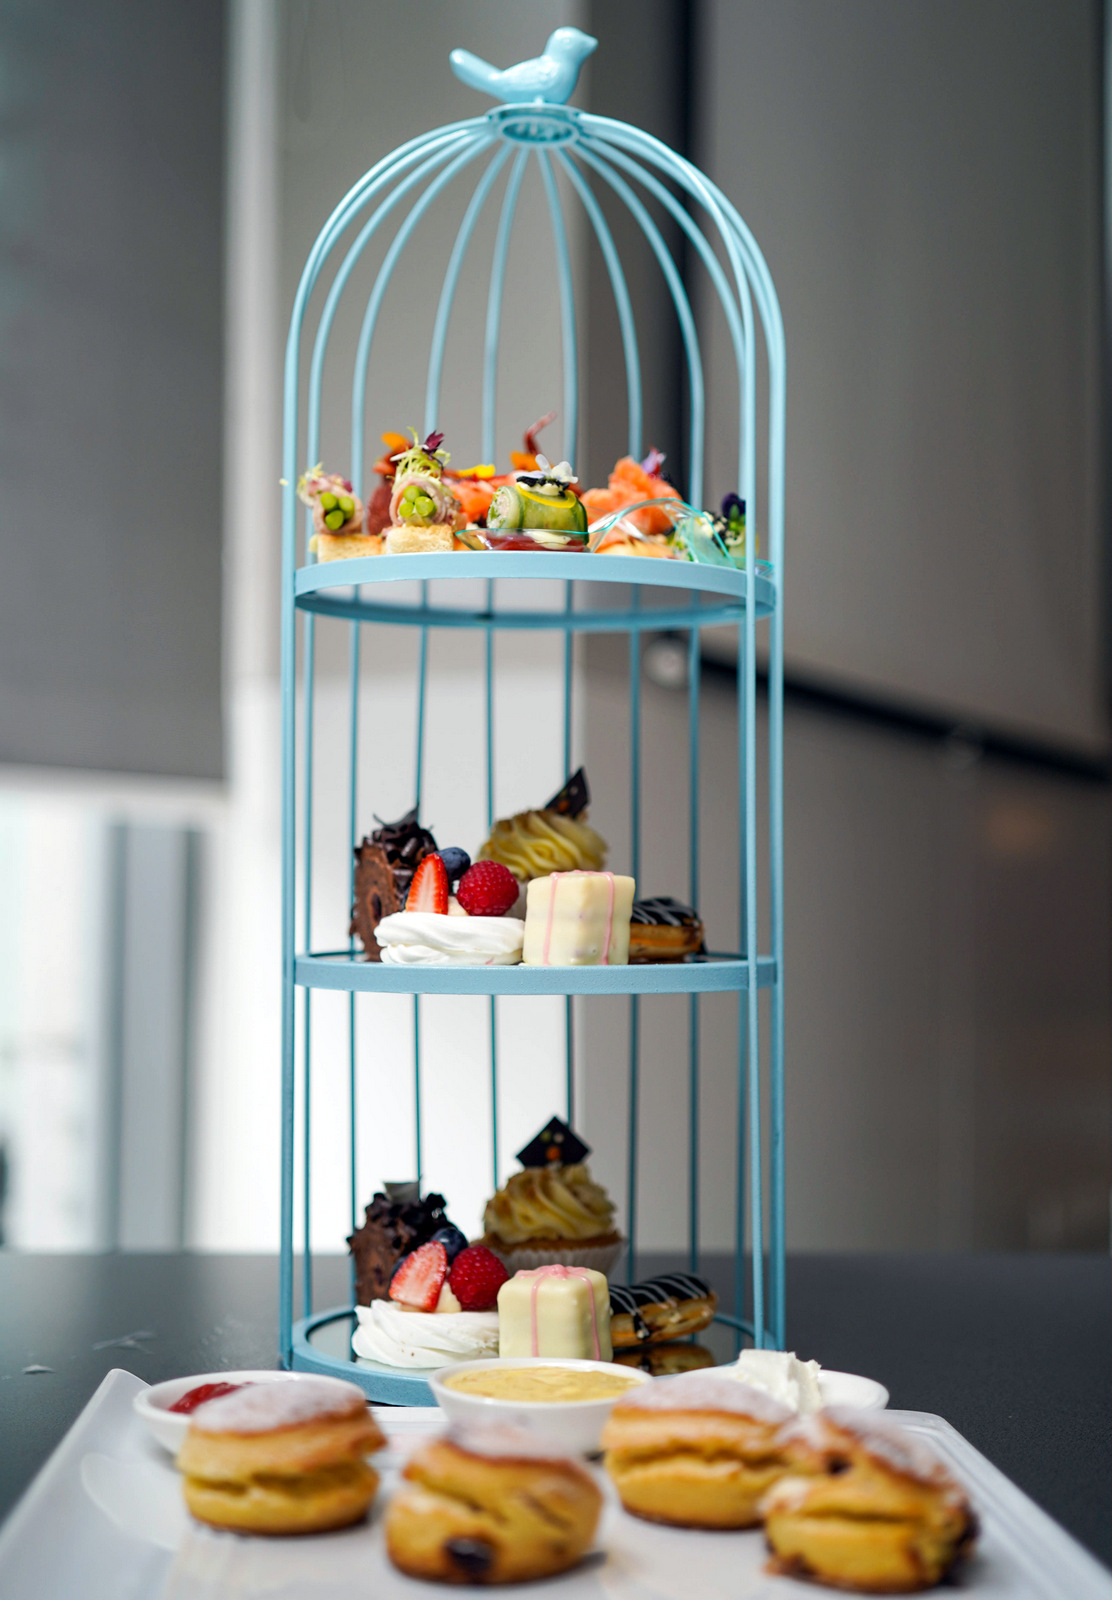 aloft's awesome afternoon tea: savouries, sweets & scones for whimsical weekends